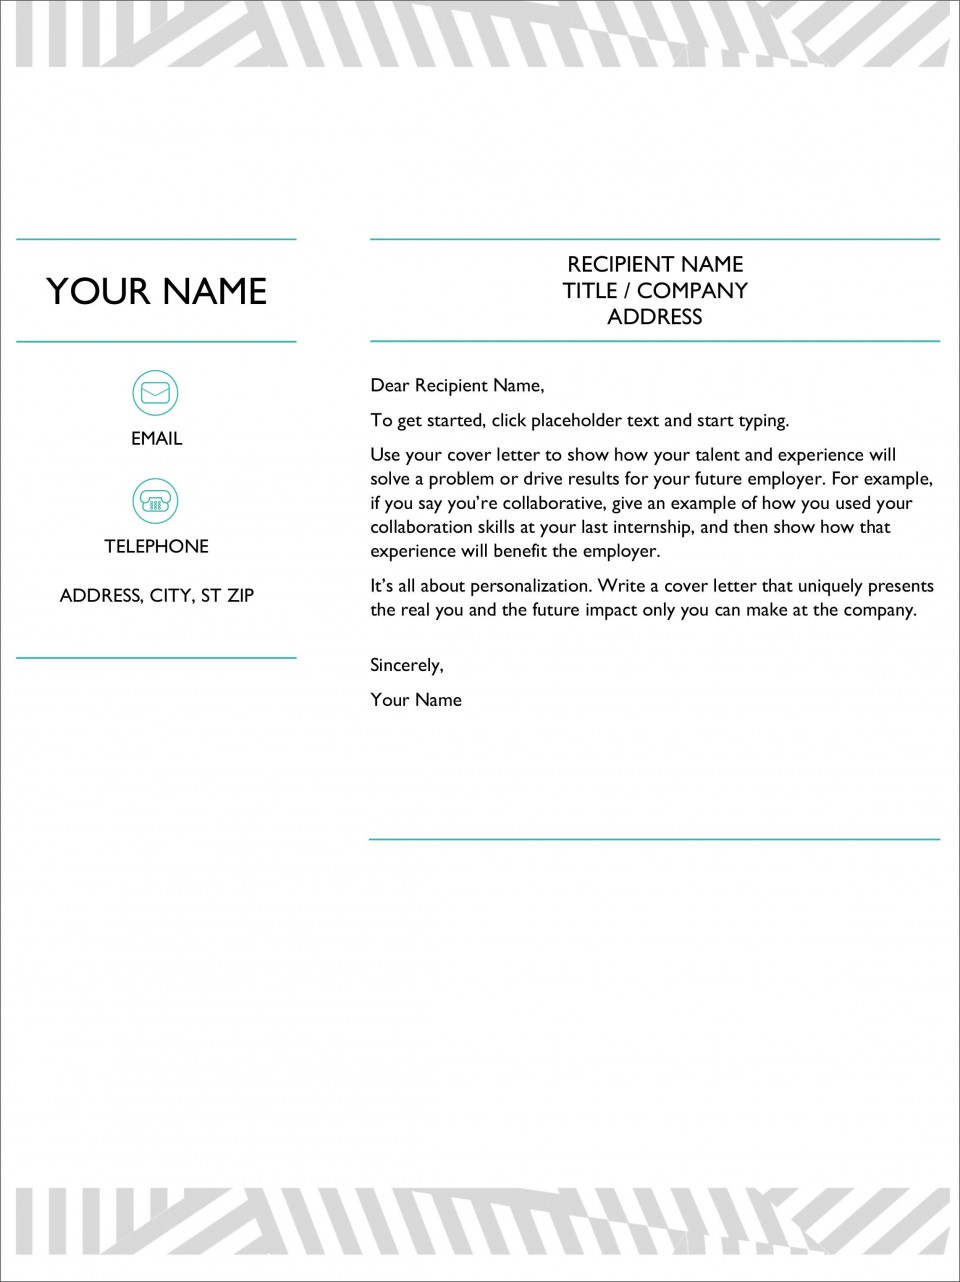 006 Unusual Cover Letter Template Microsoft Word Highest Clarity  2007 Fax960